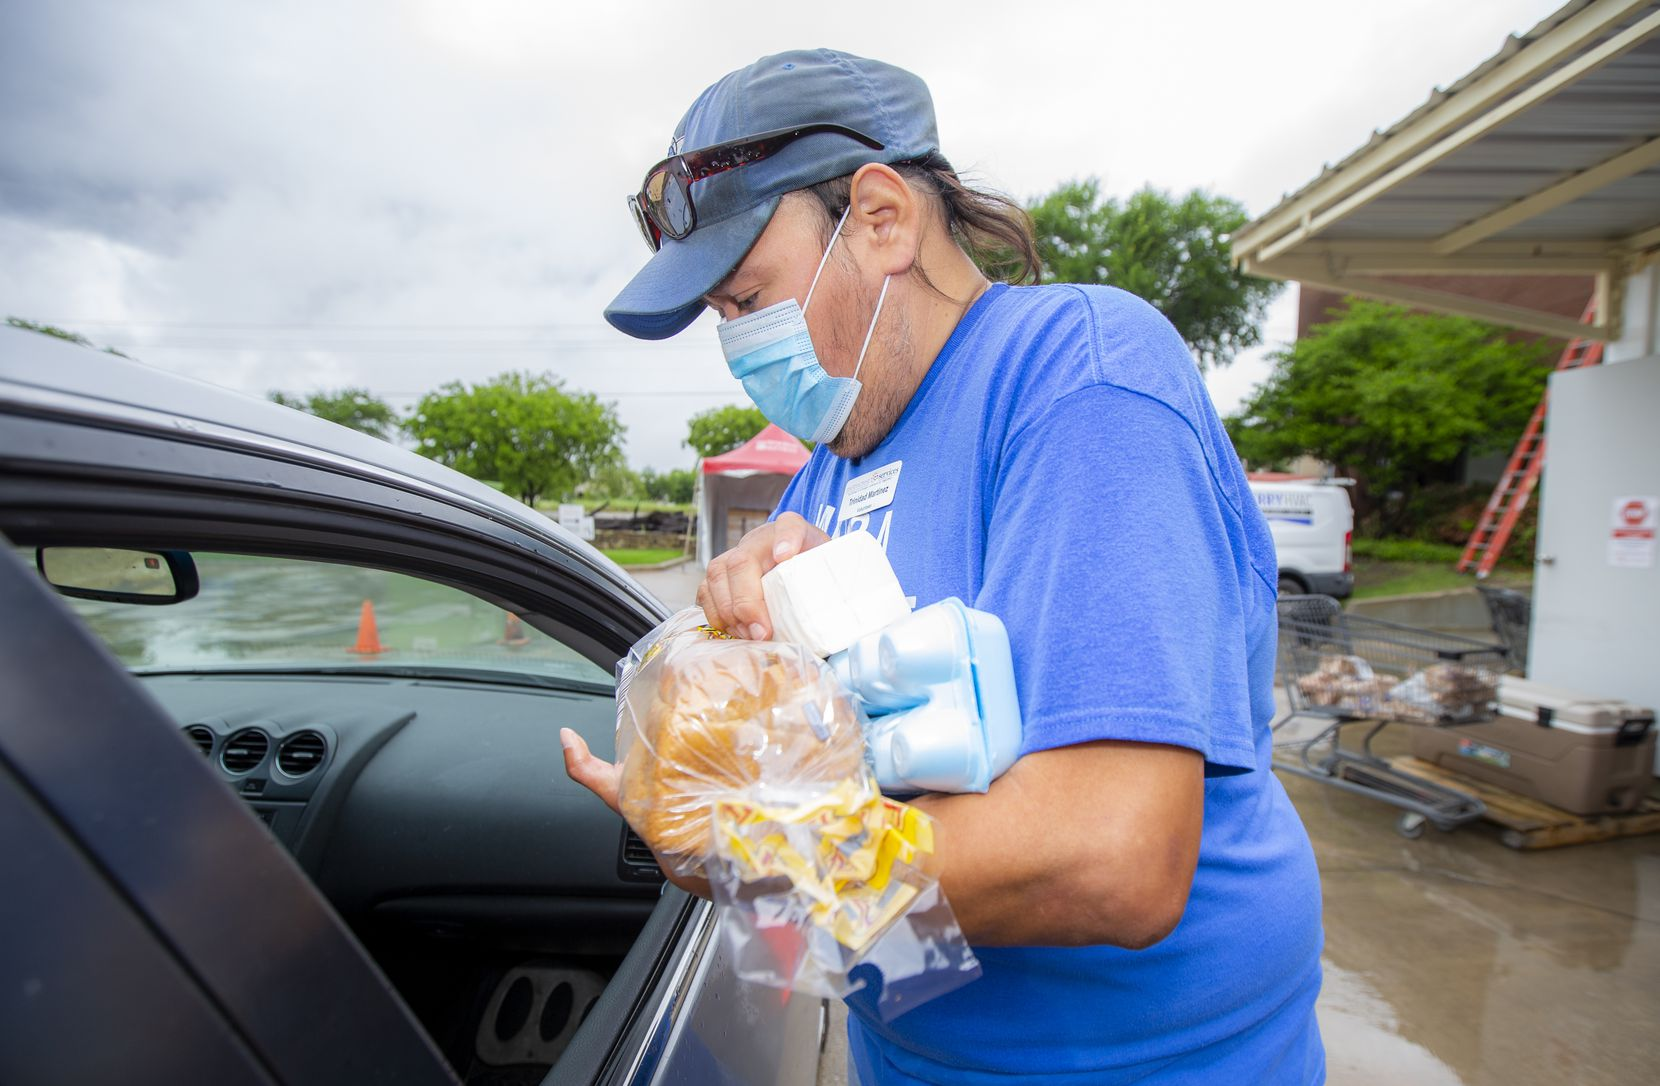 """Volunteer Trinidad Martinez loads groceries into a client's car at Metrocrest Services in Farmers Branch. Martinez, who is legally blind and has health issues, has been volunteering with various organizations since he became disabled in 2007. """"I wanted to get out there and contribute to society,"""" he says."""